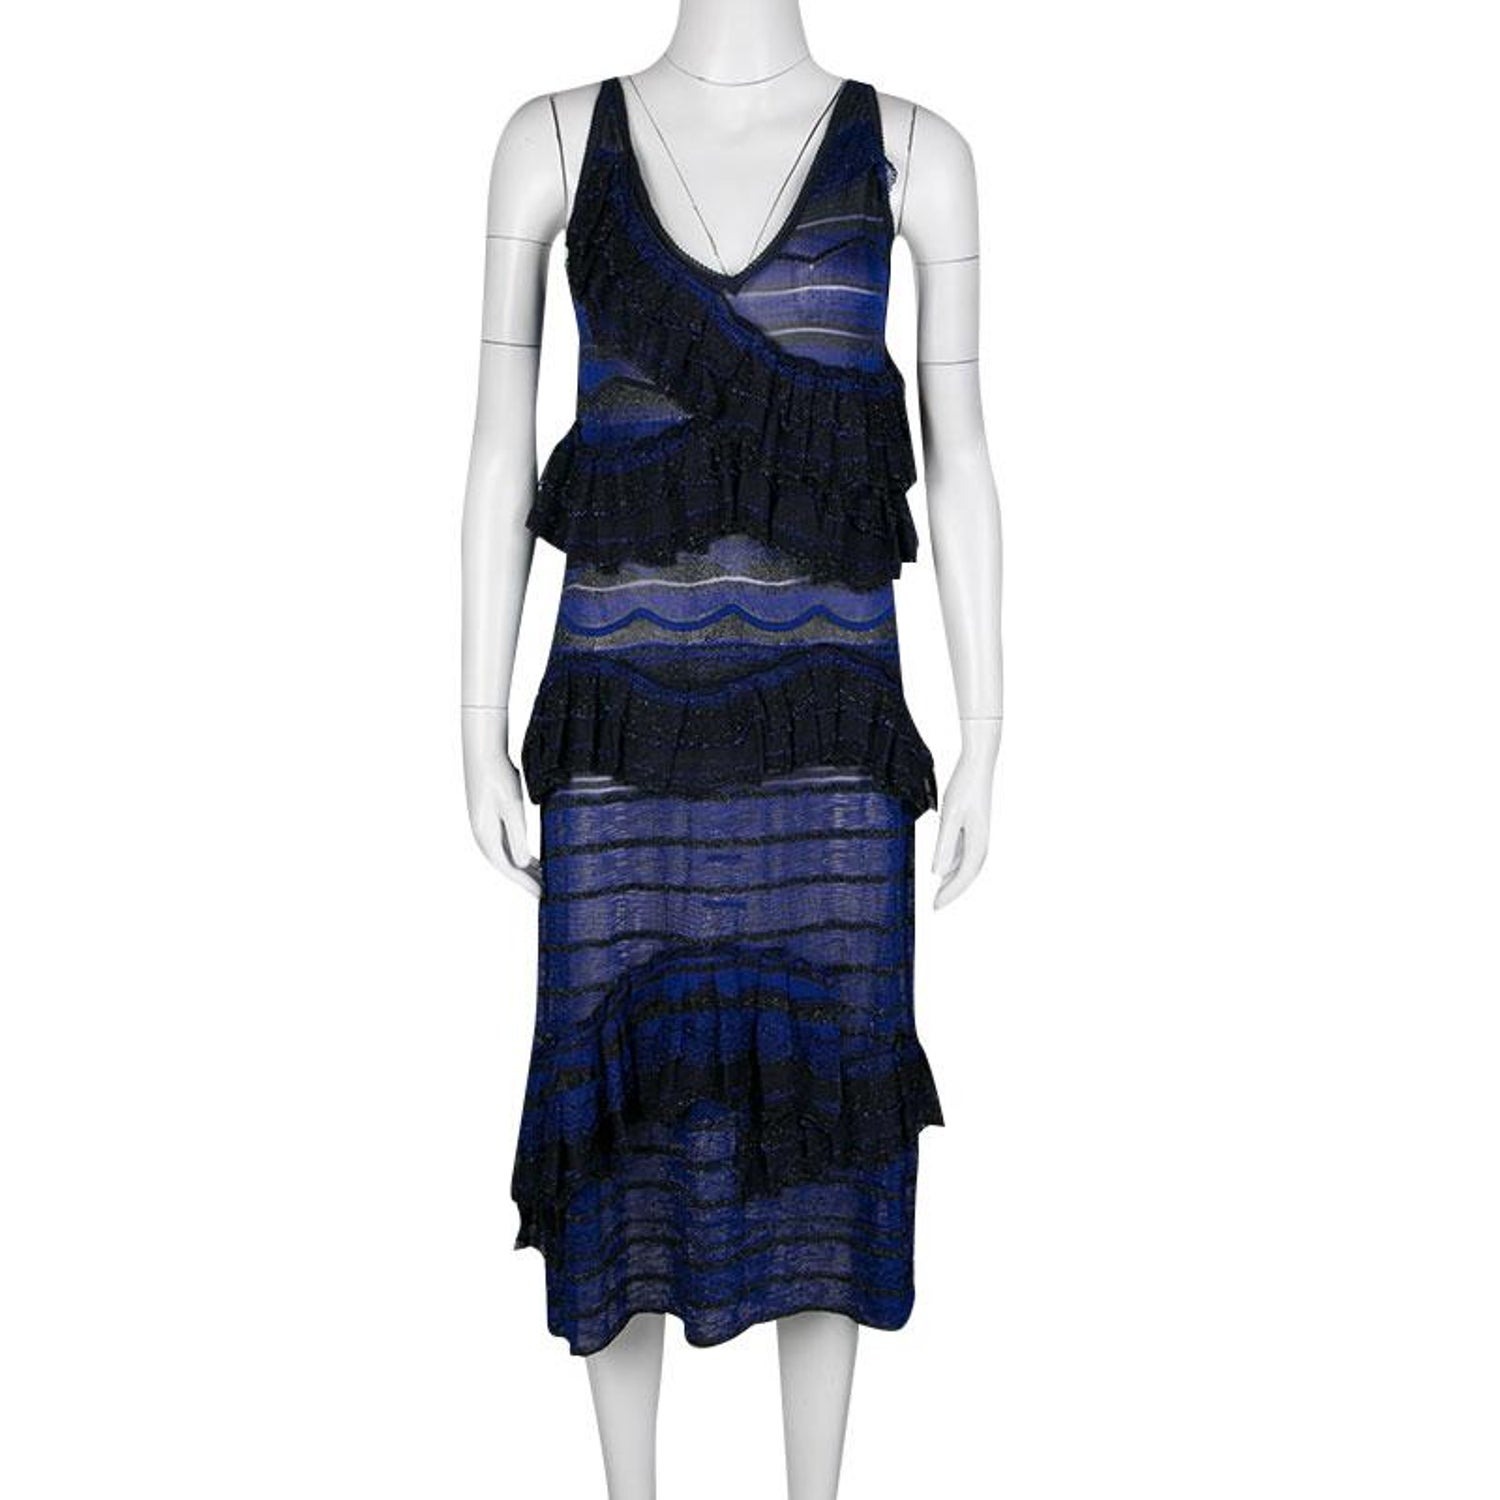 b66452e643e Missoni Blue and Black Lurex Knit Ruffled Sleeveless Dress M For Sale at  1stdibs